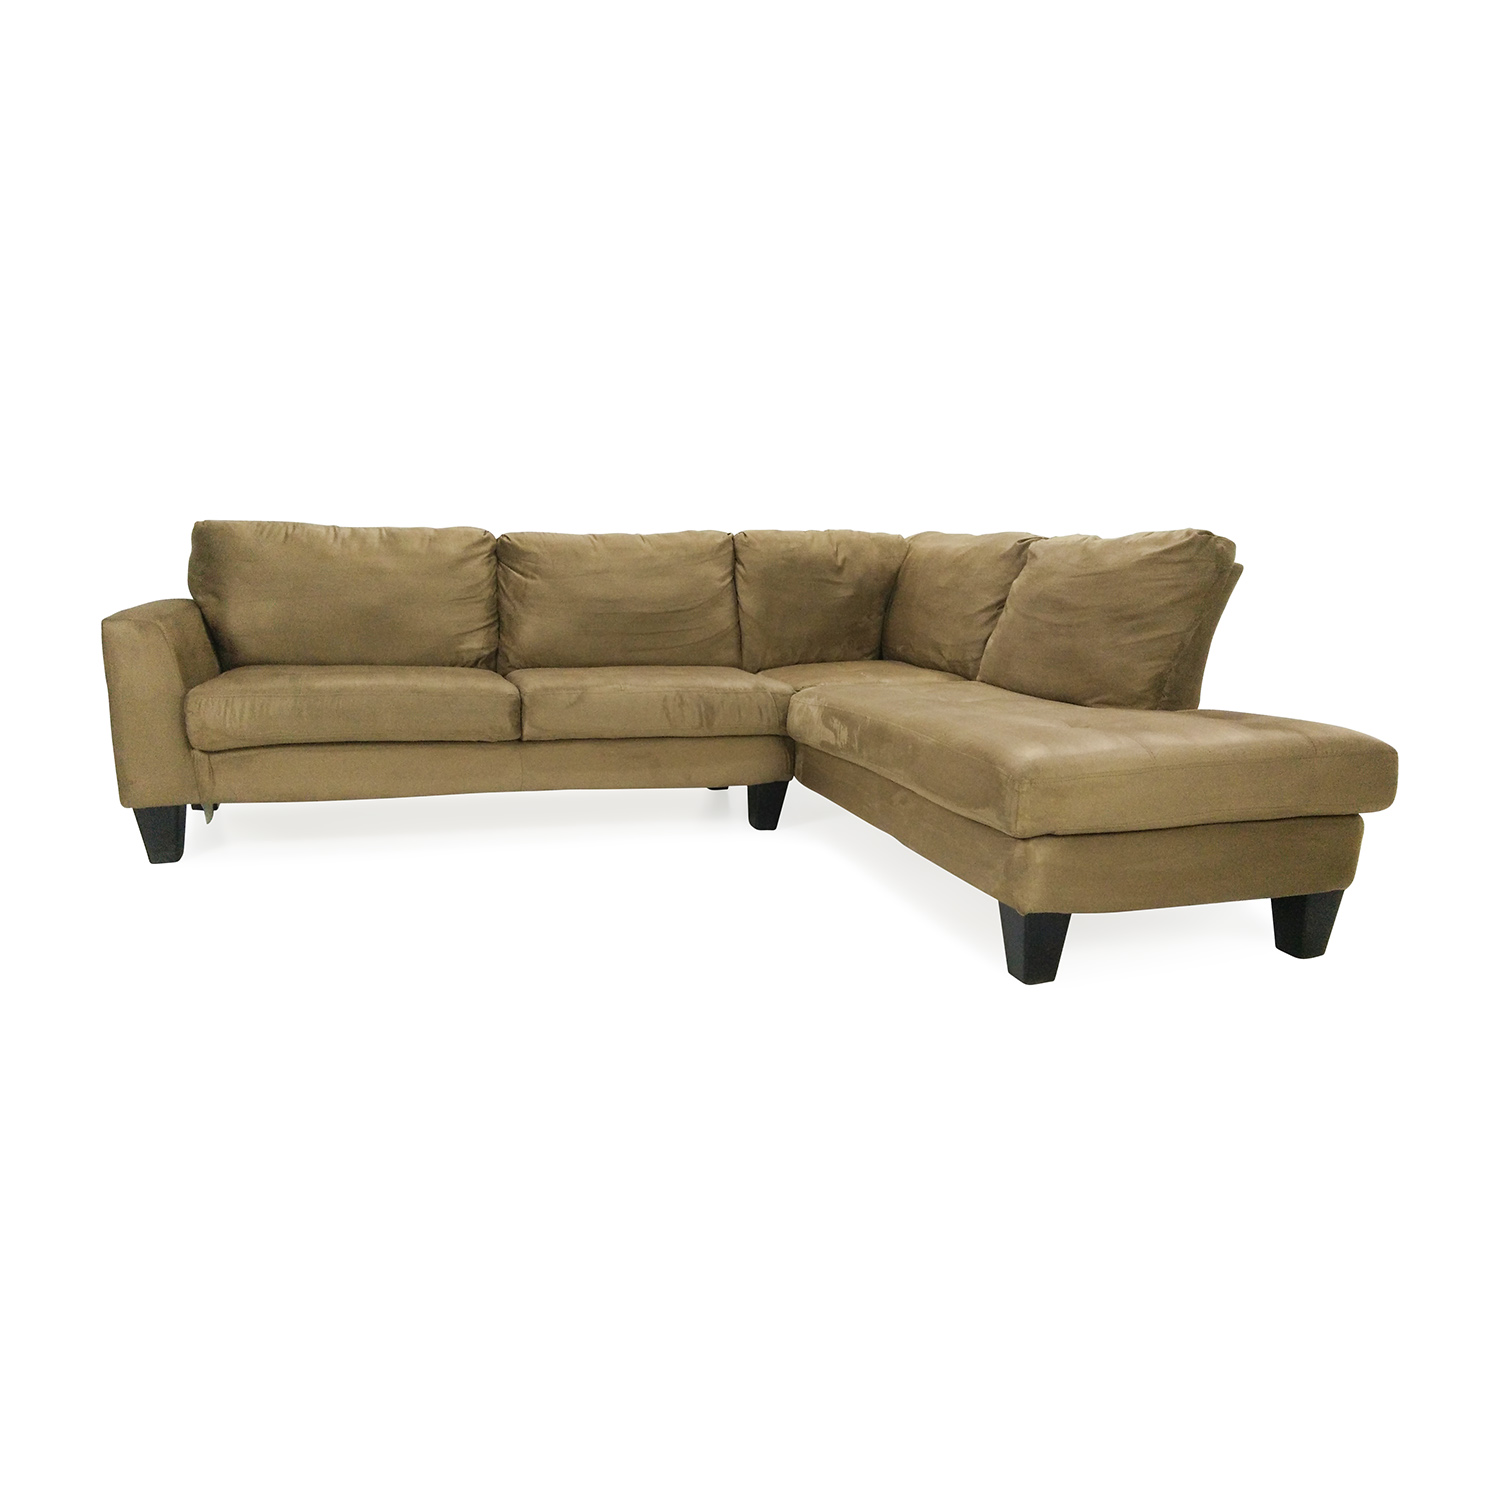 buy Jennifer Furniture Jennifer Furniture Sectional Sofa online